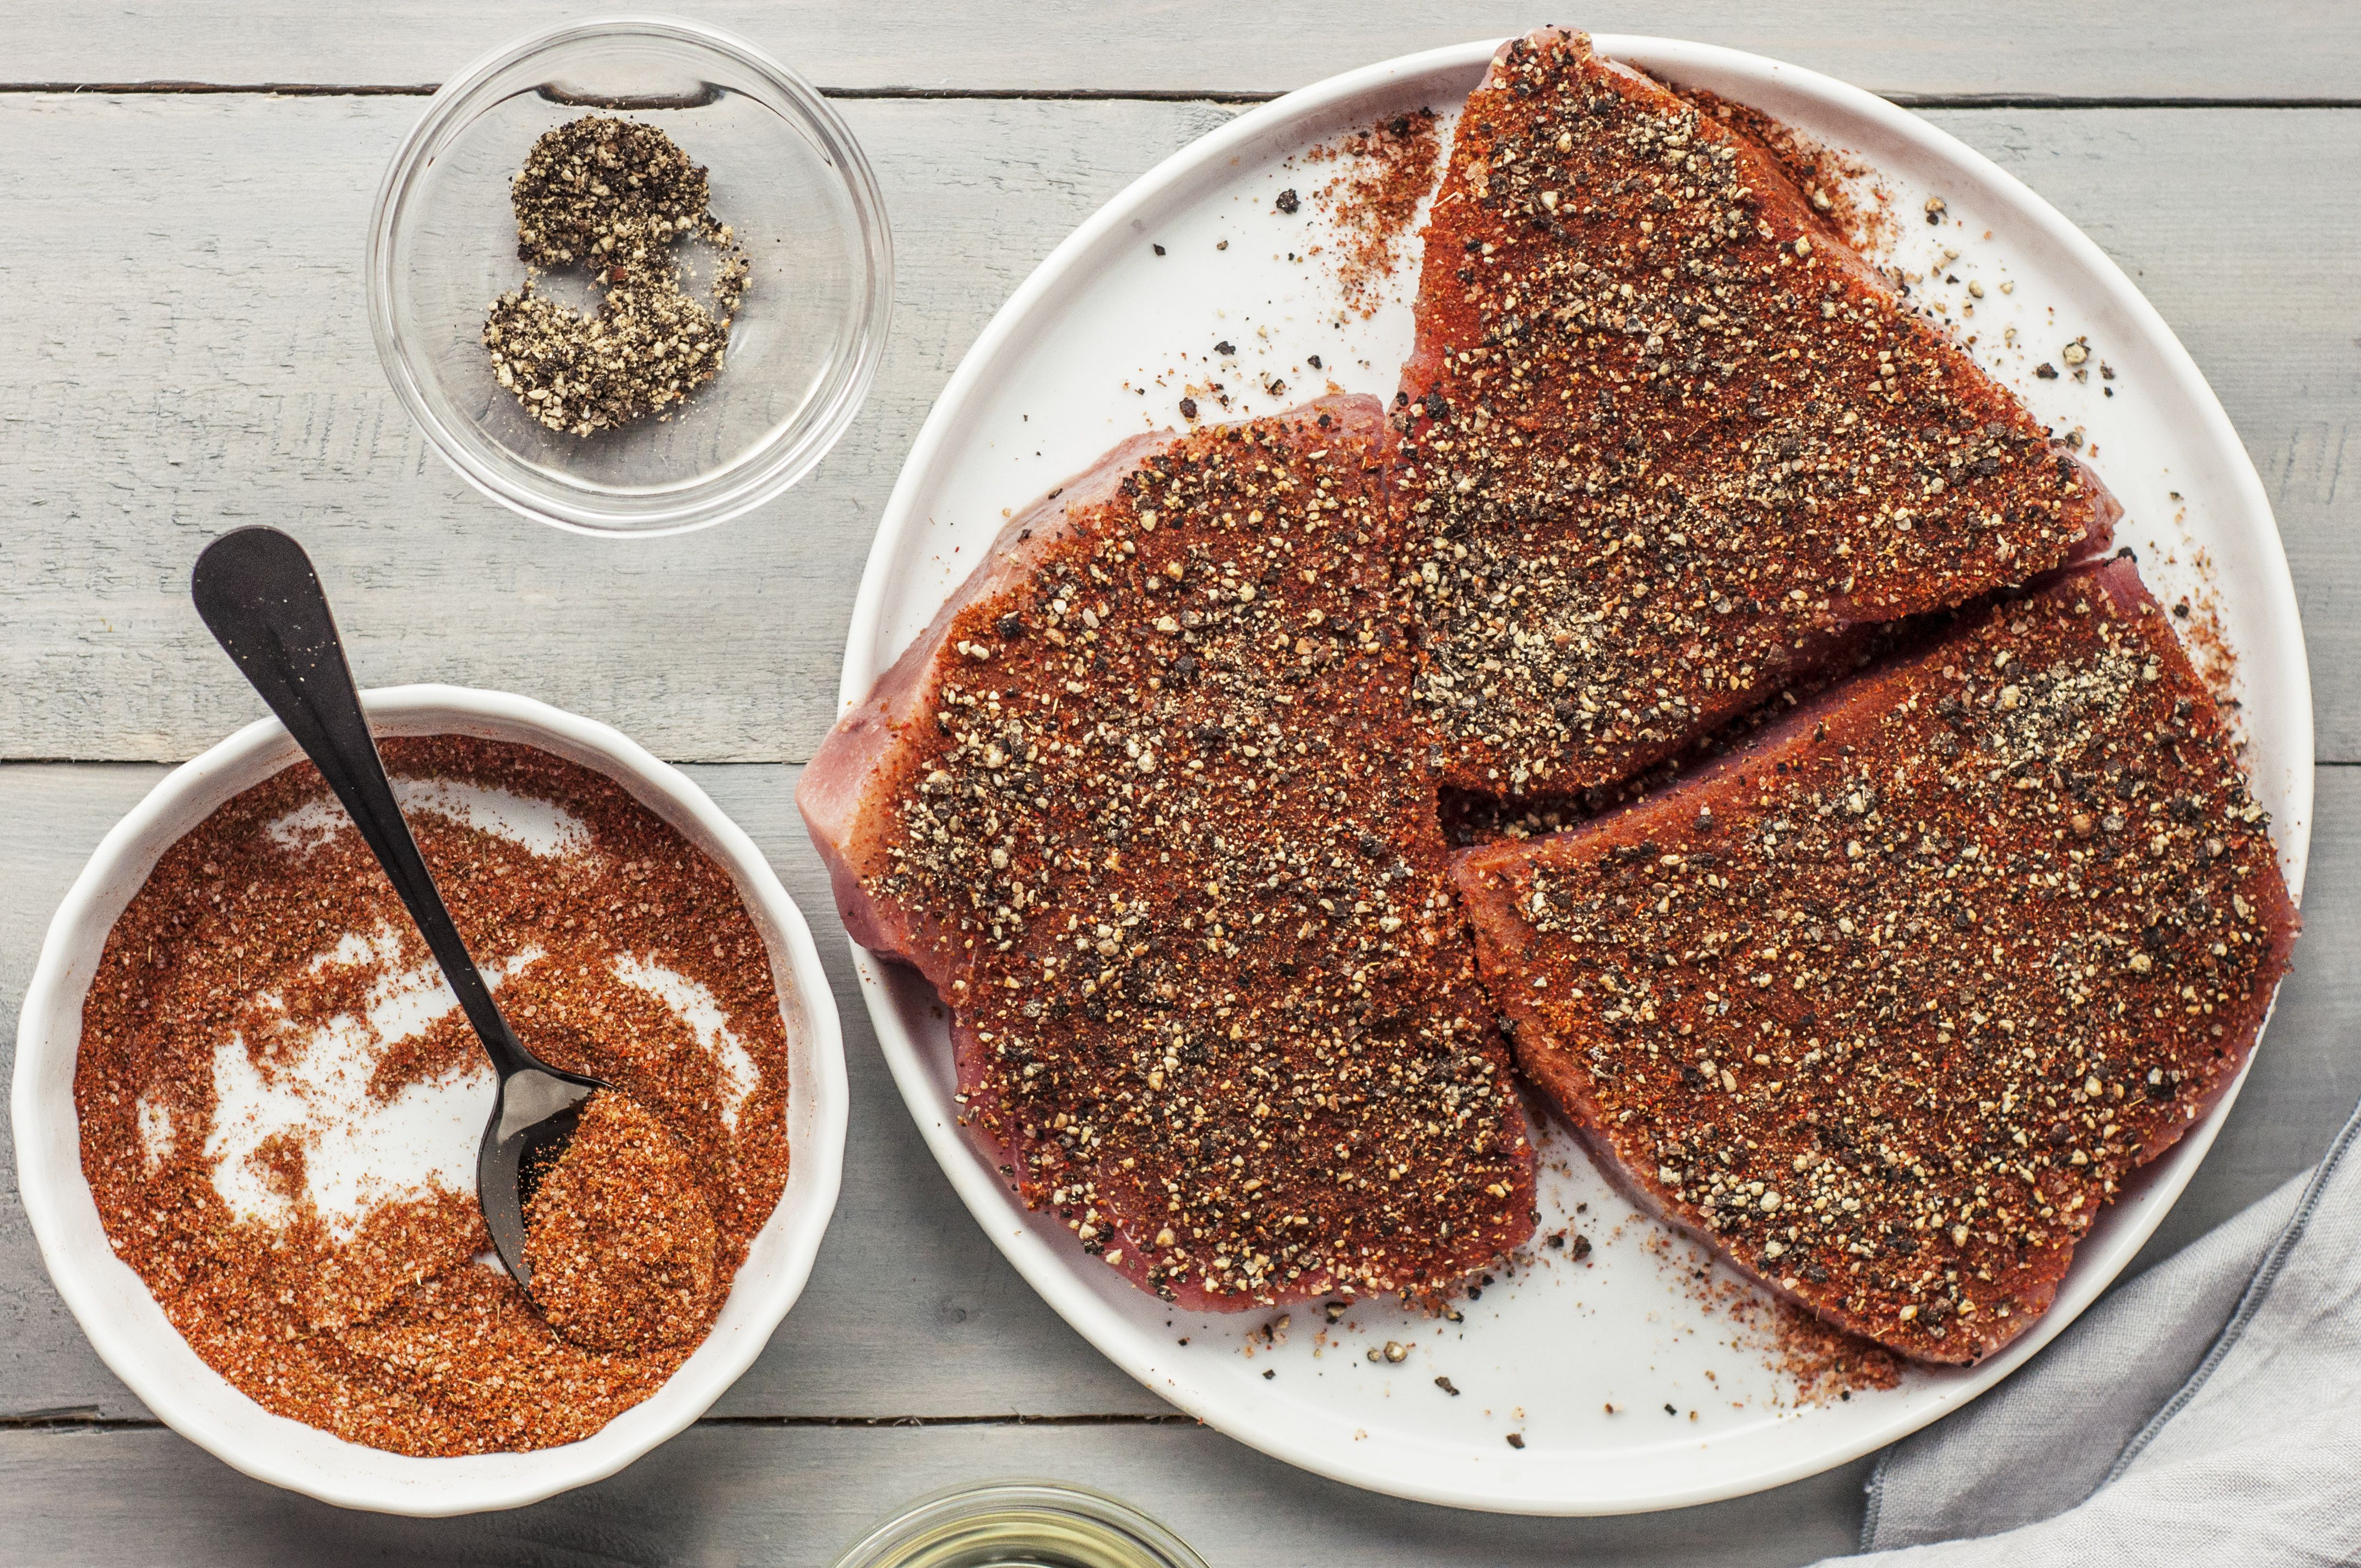 Evenly coat the tuna steaks with the freshly ground black pepper